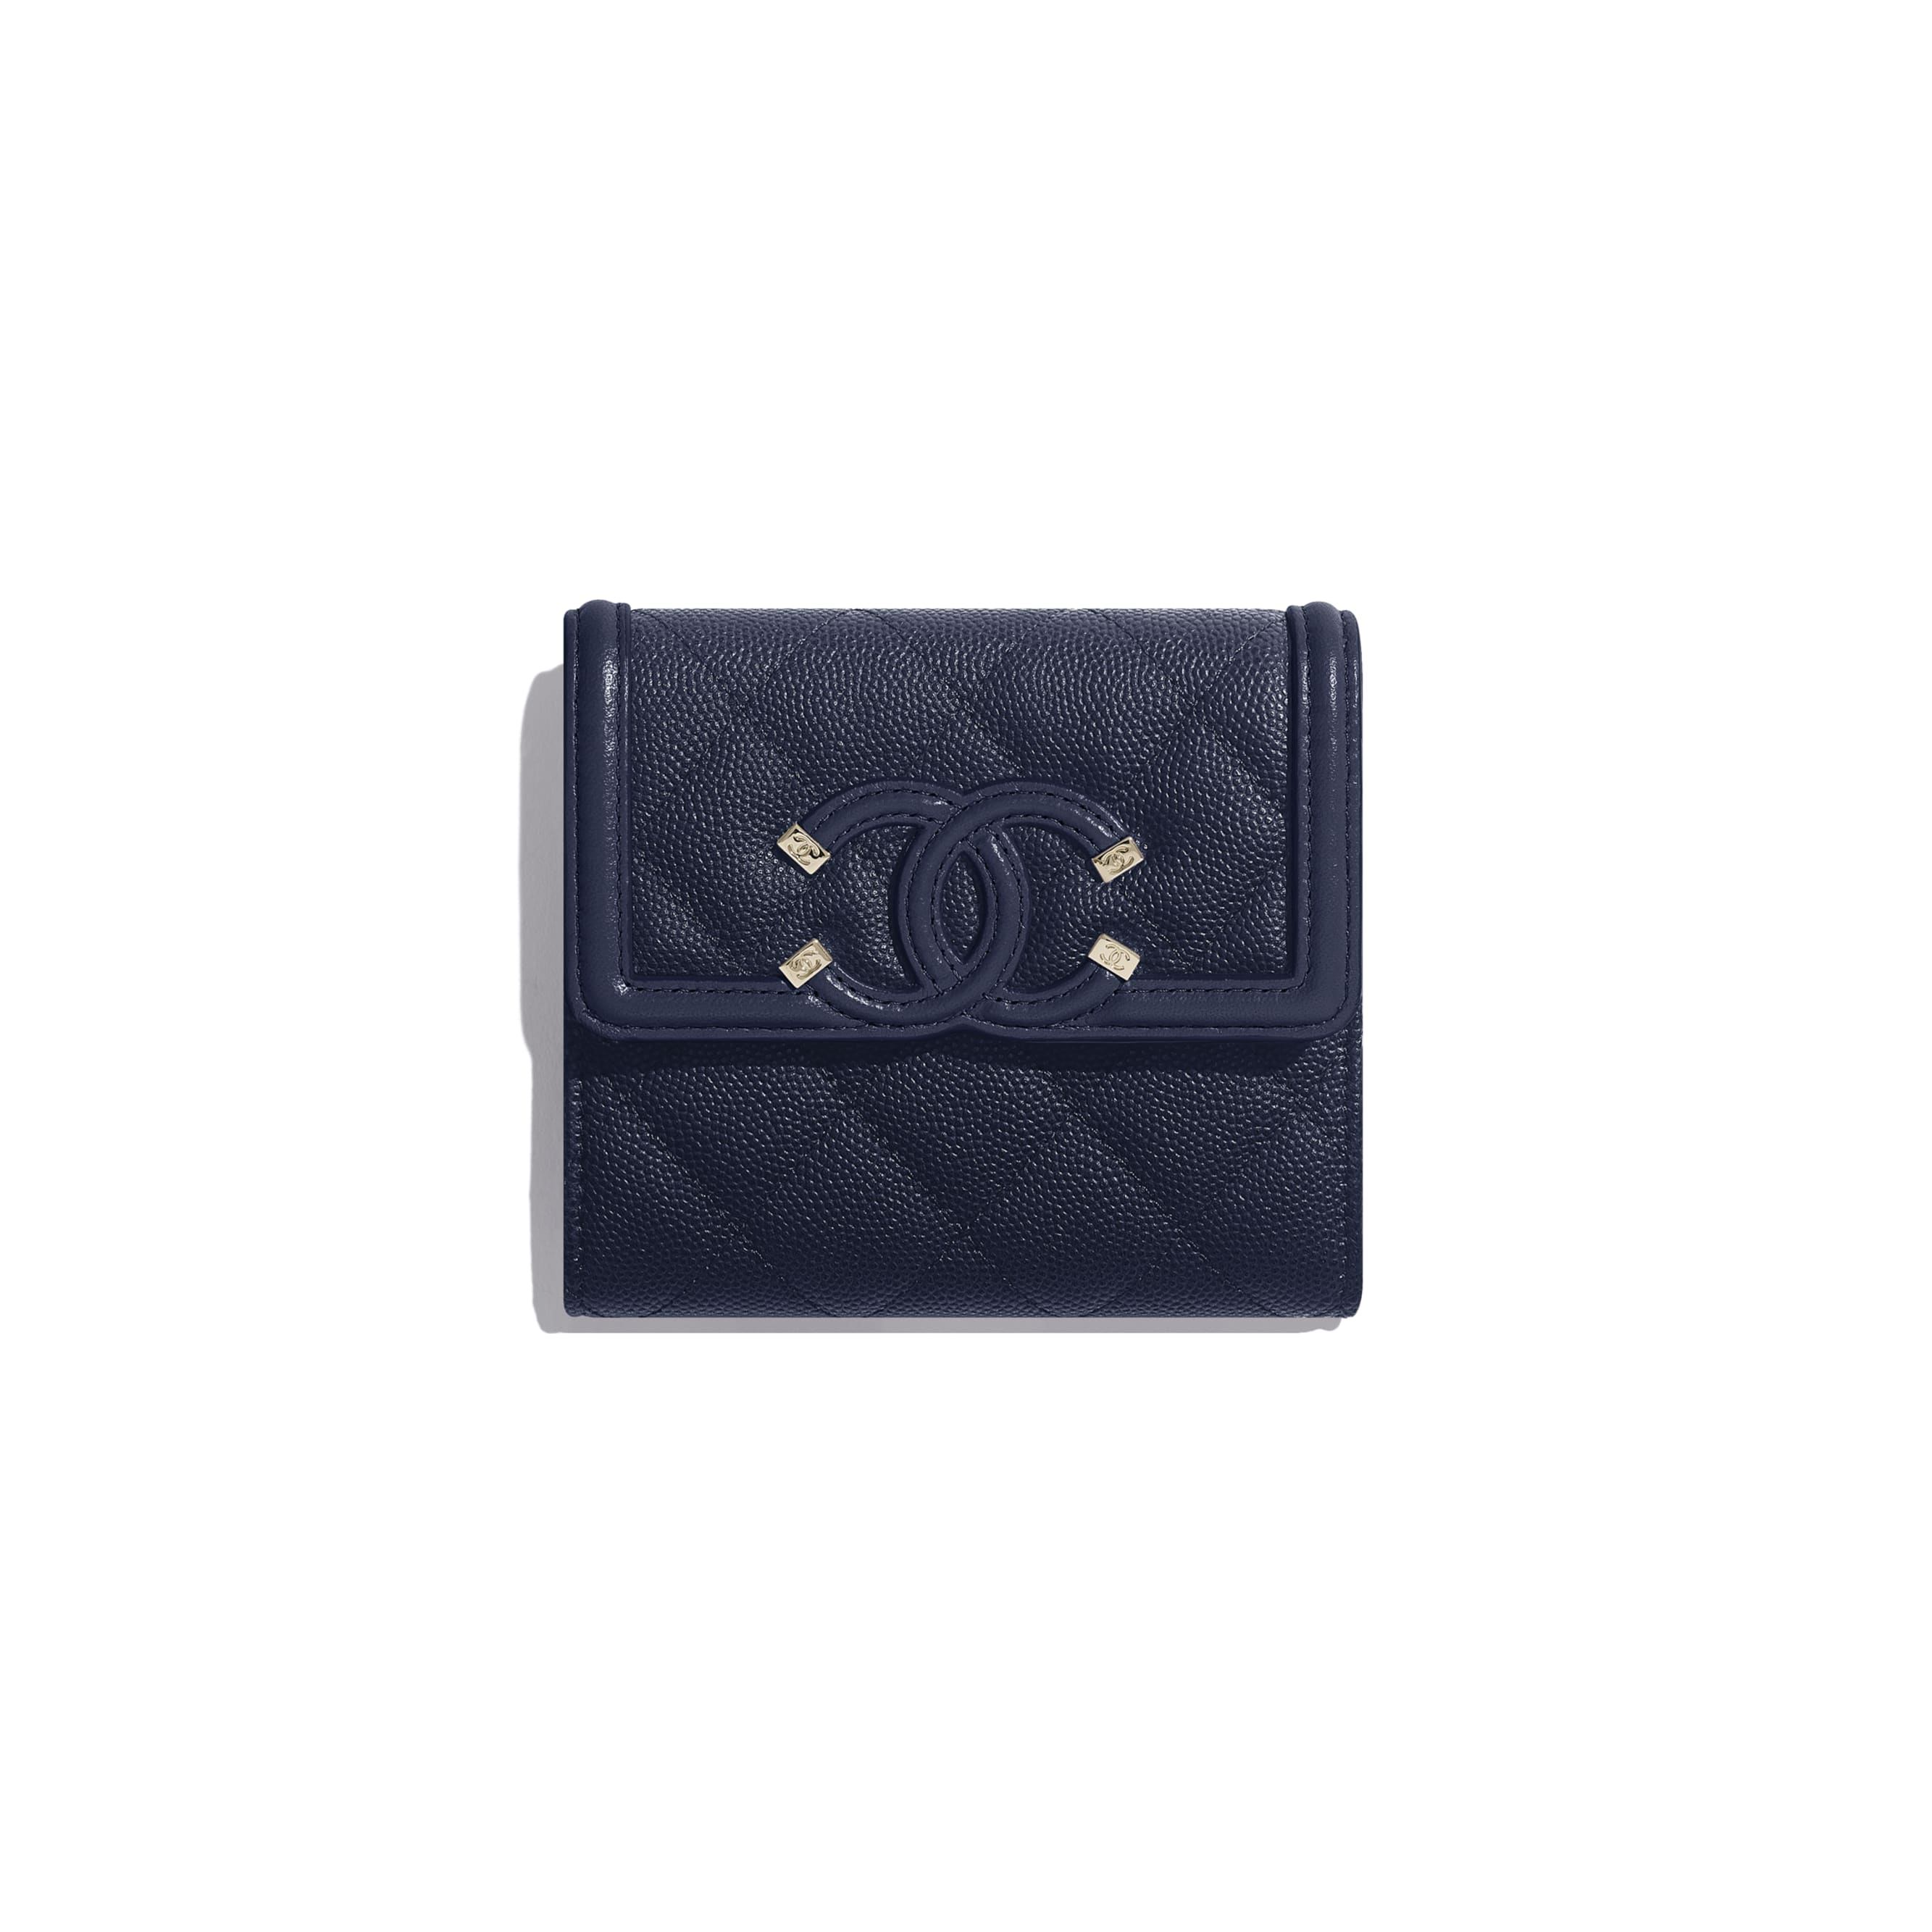 Small Flap Wallet - Navy Blue - Grained Calfskin & Gold-Tone Metal - CHANEL - Default view - see standard sized version